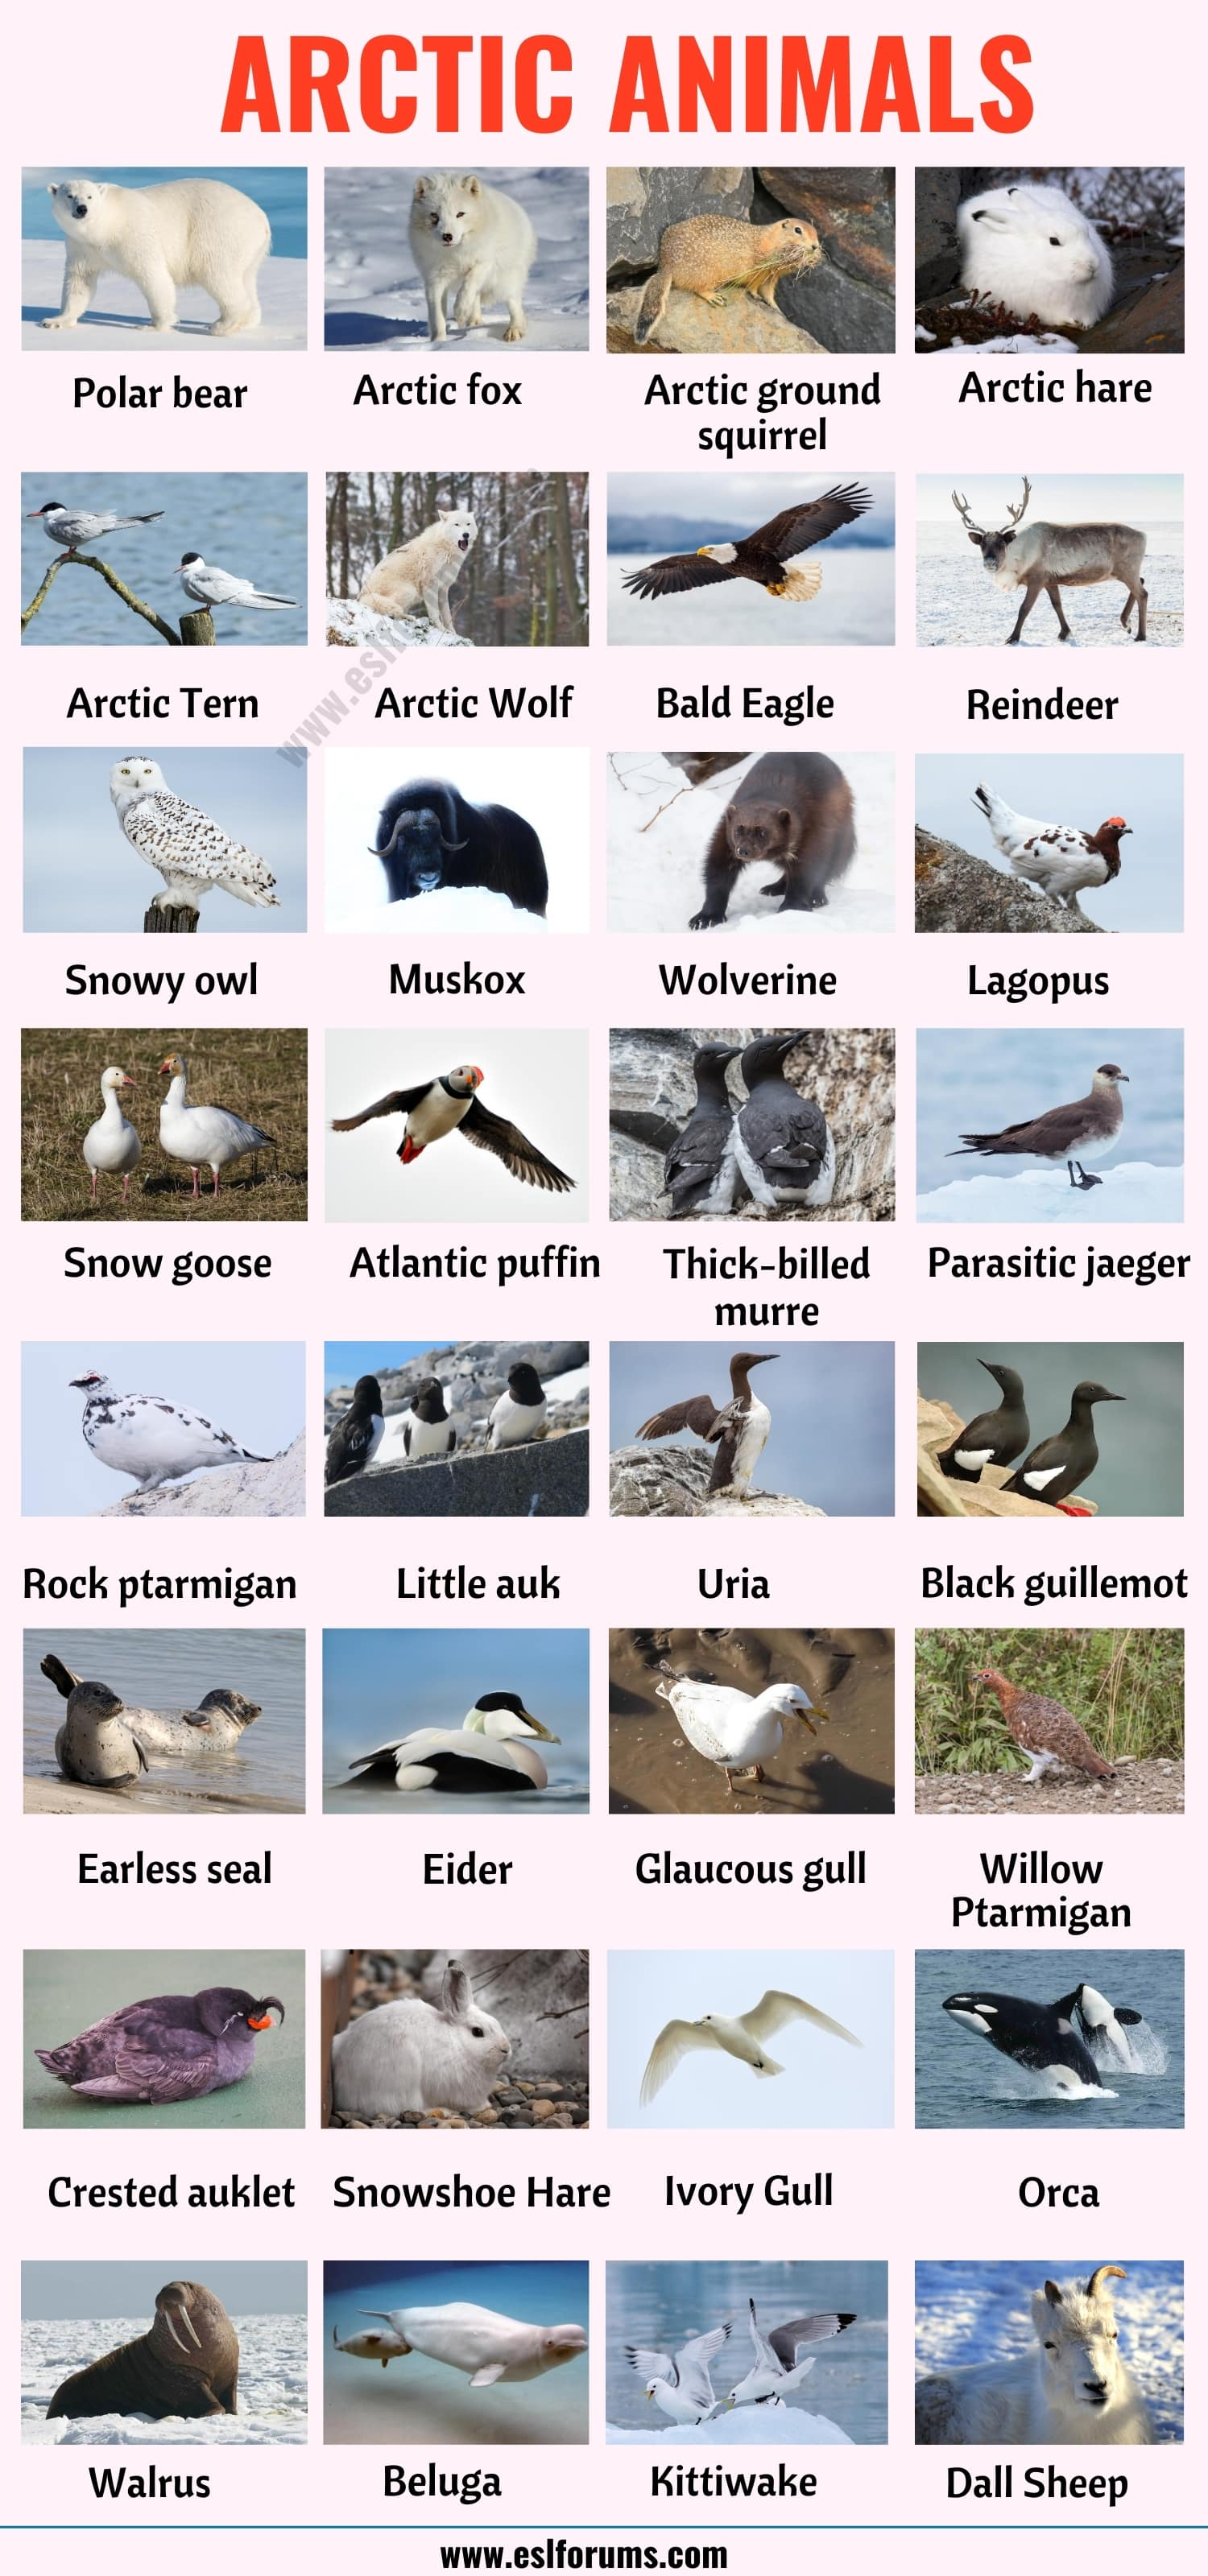 Arctic Animals: List of 32 Animals that Live in the Arctic with ESL Picture!